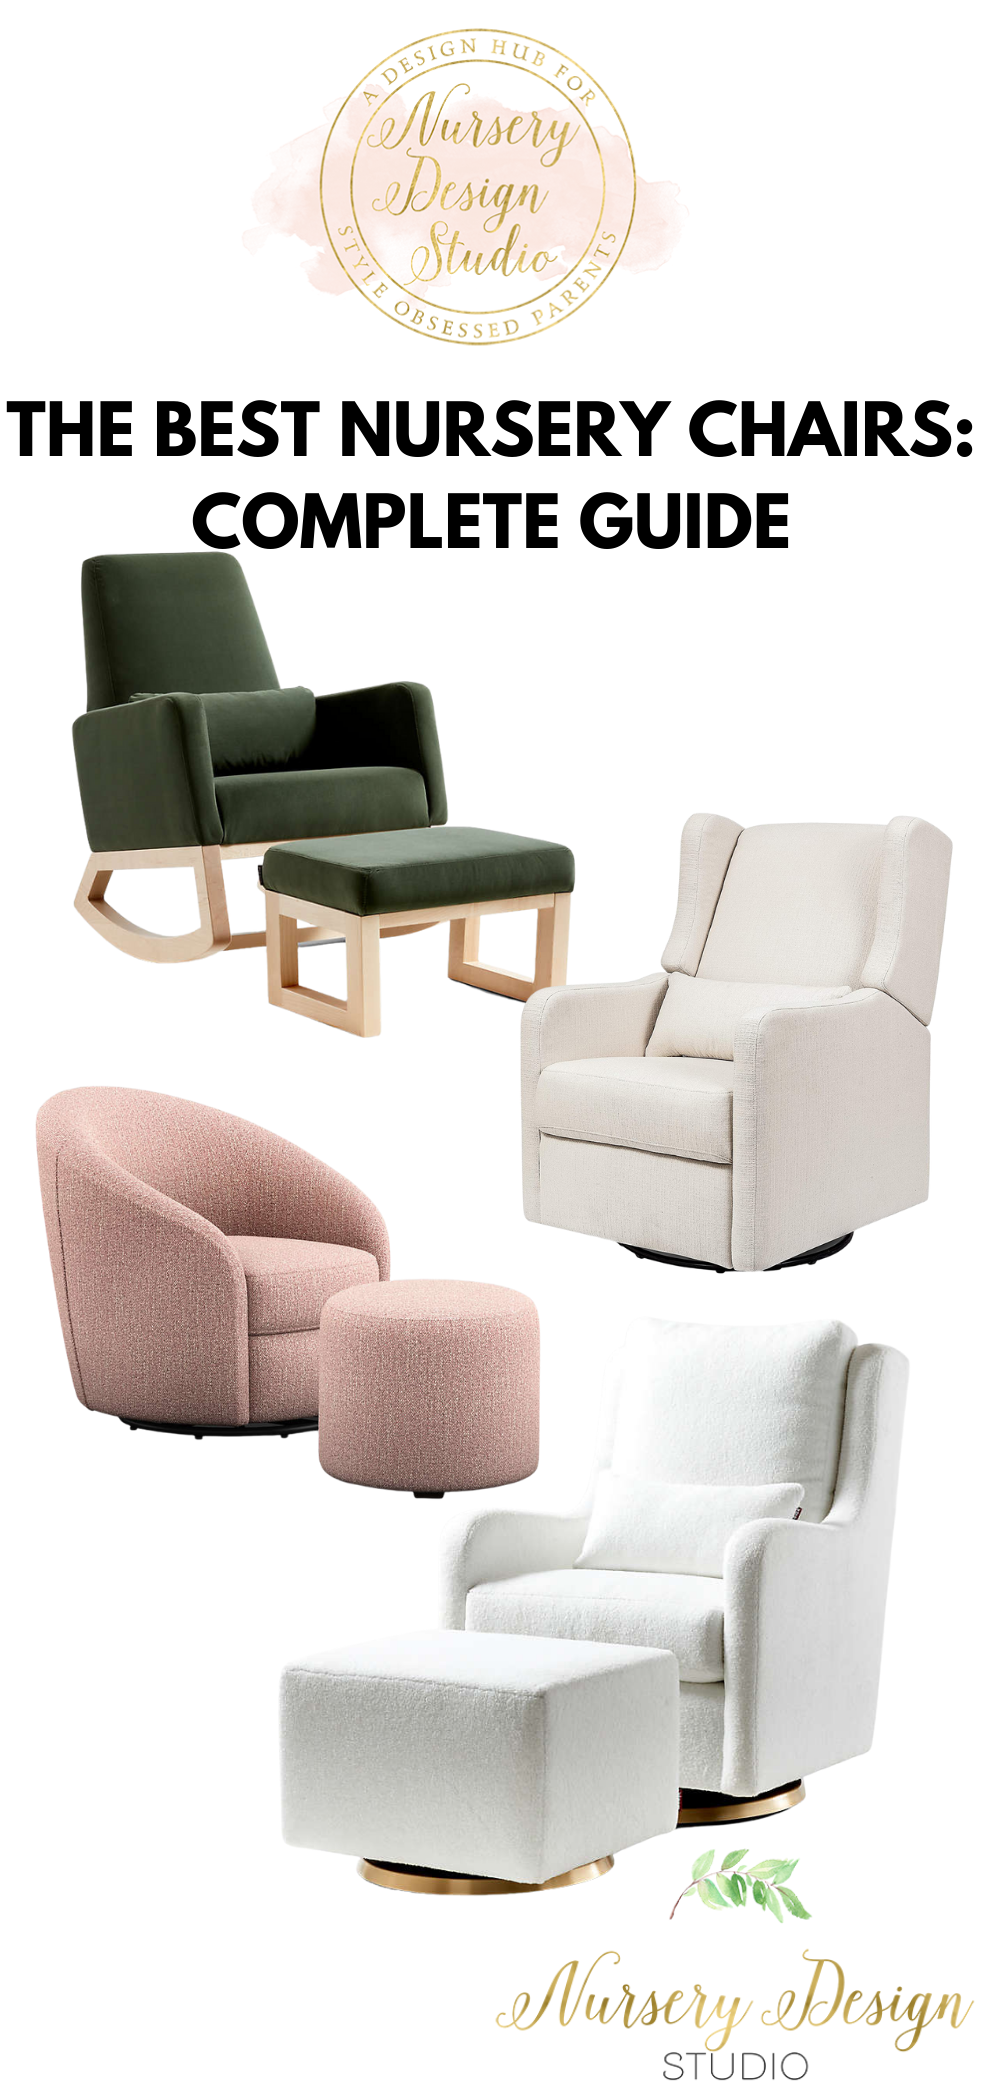 THE BEST NURSERY CHAIRS : COMPLETE GUIDE